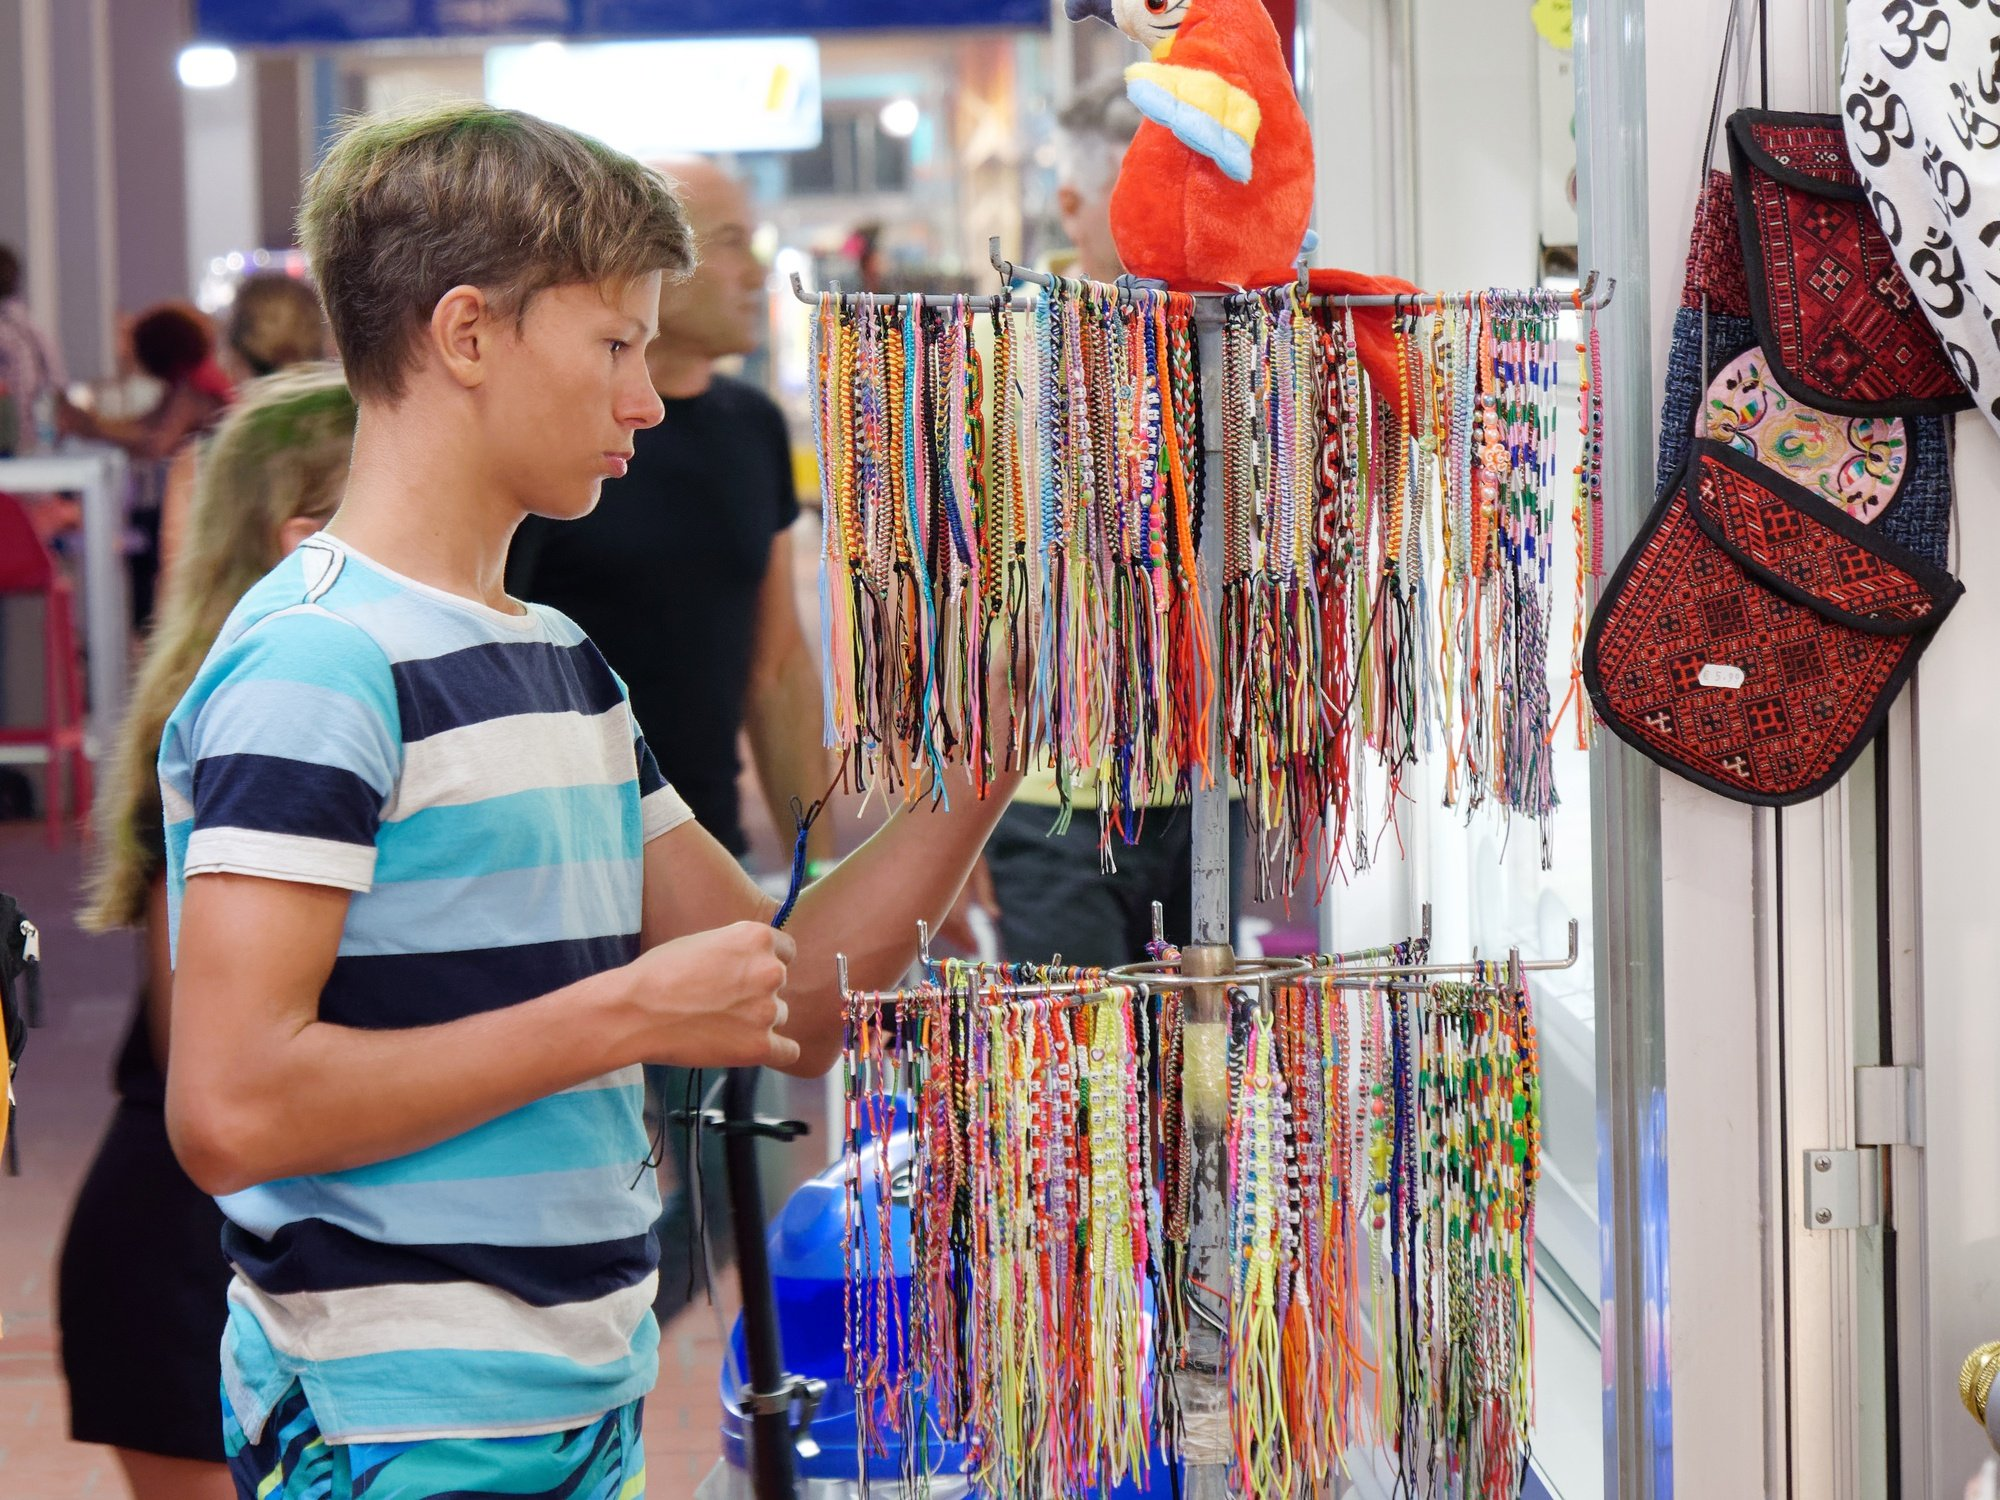 Souvenir hunting is fun for tweens and teens